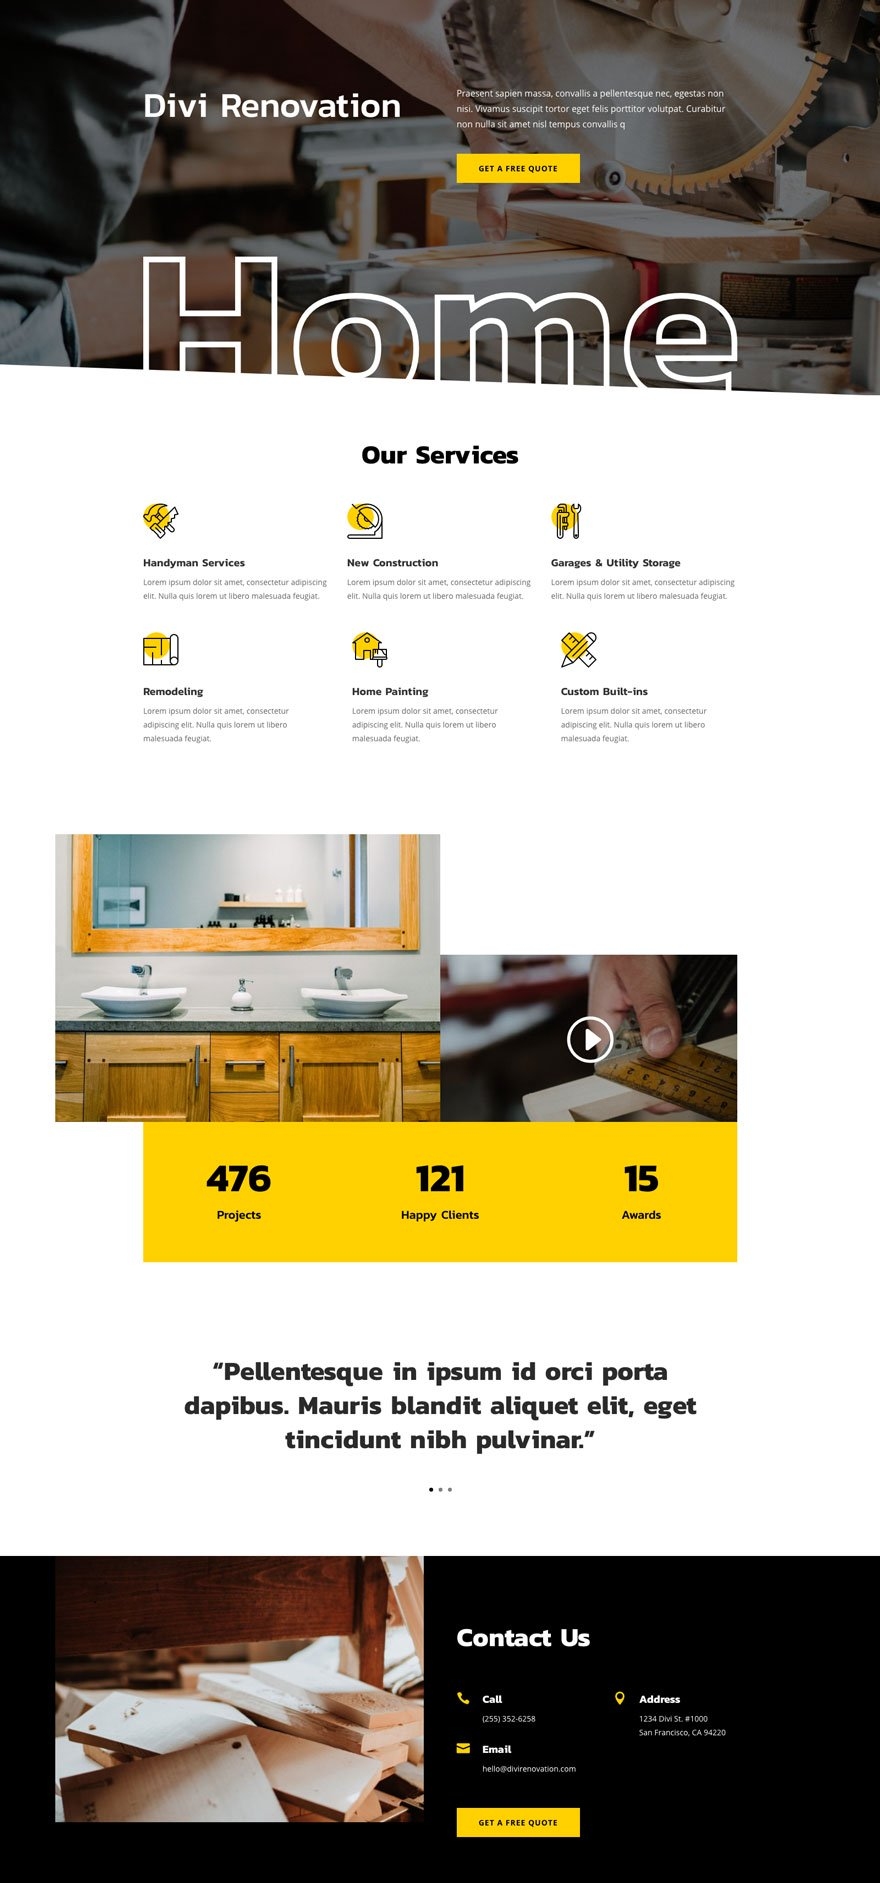 renovation home page - Renovation Divi Layout By Elegant Themes